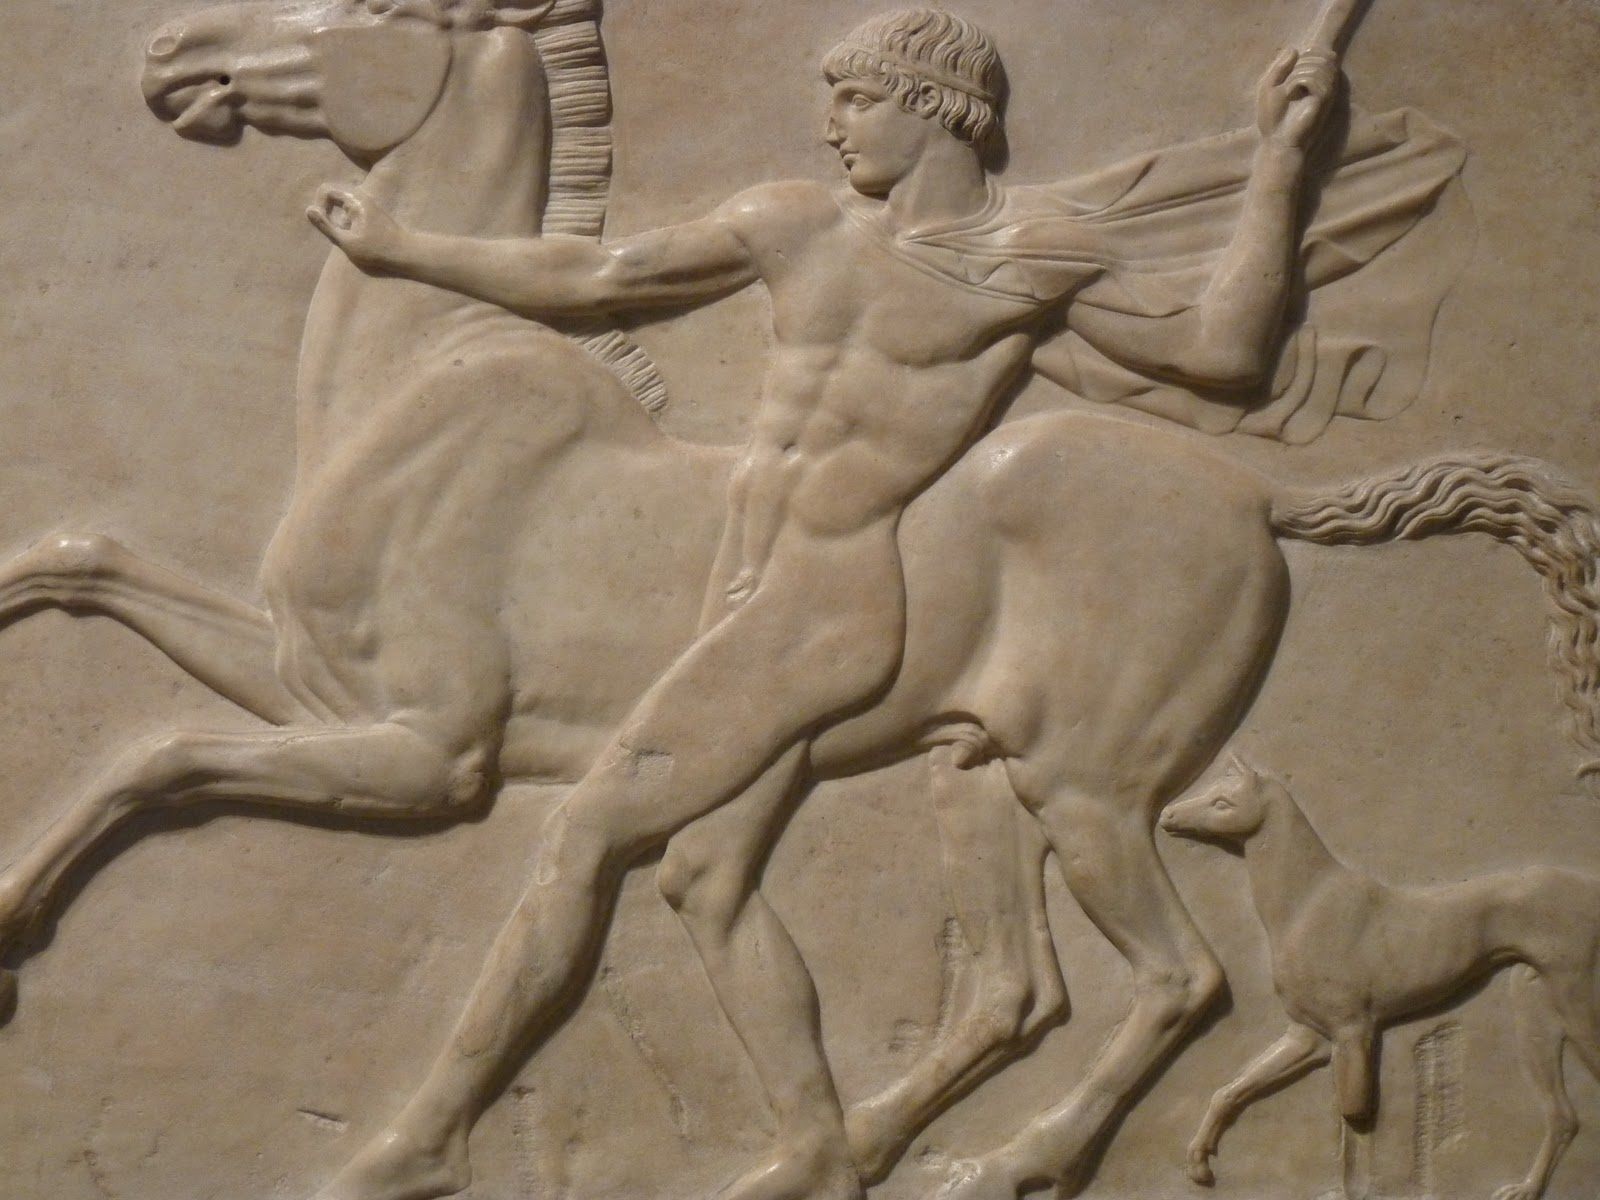 British Museum, London, England, Bas-relief 01